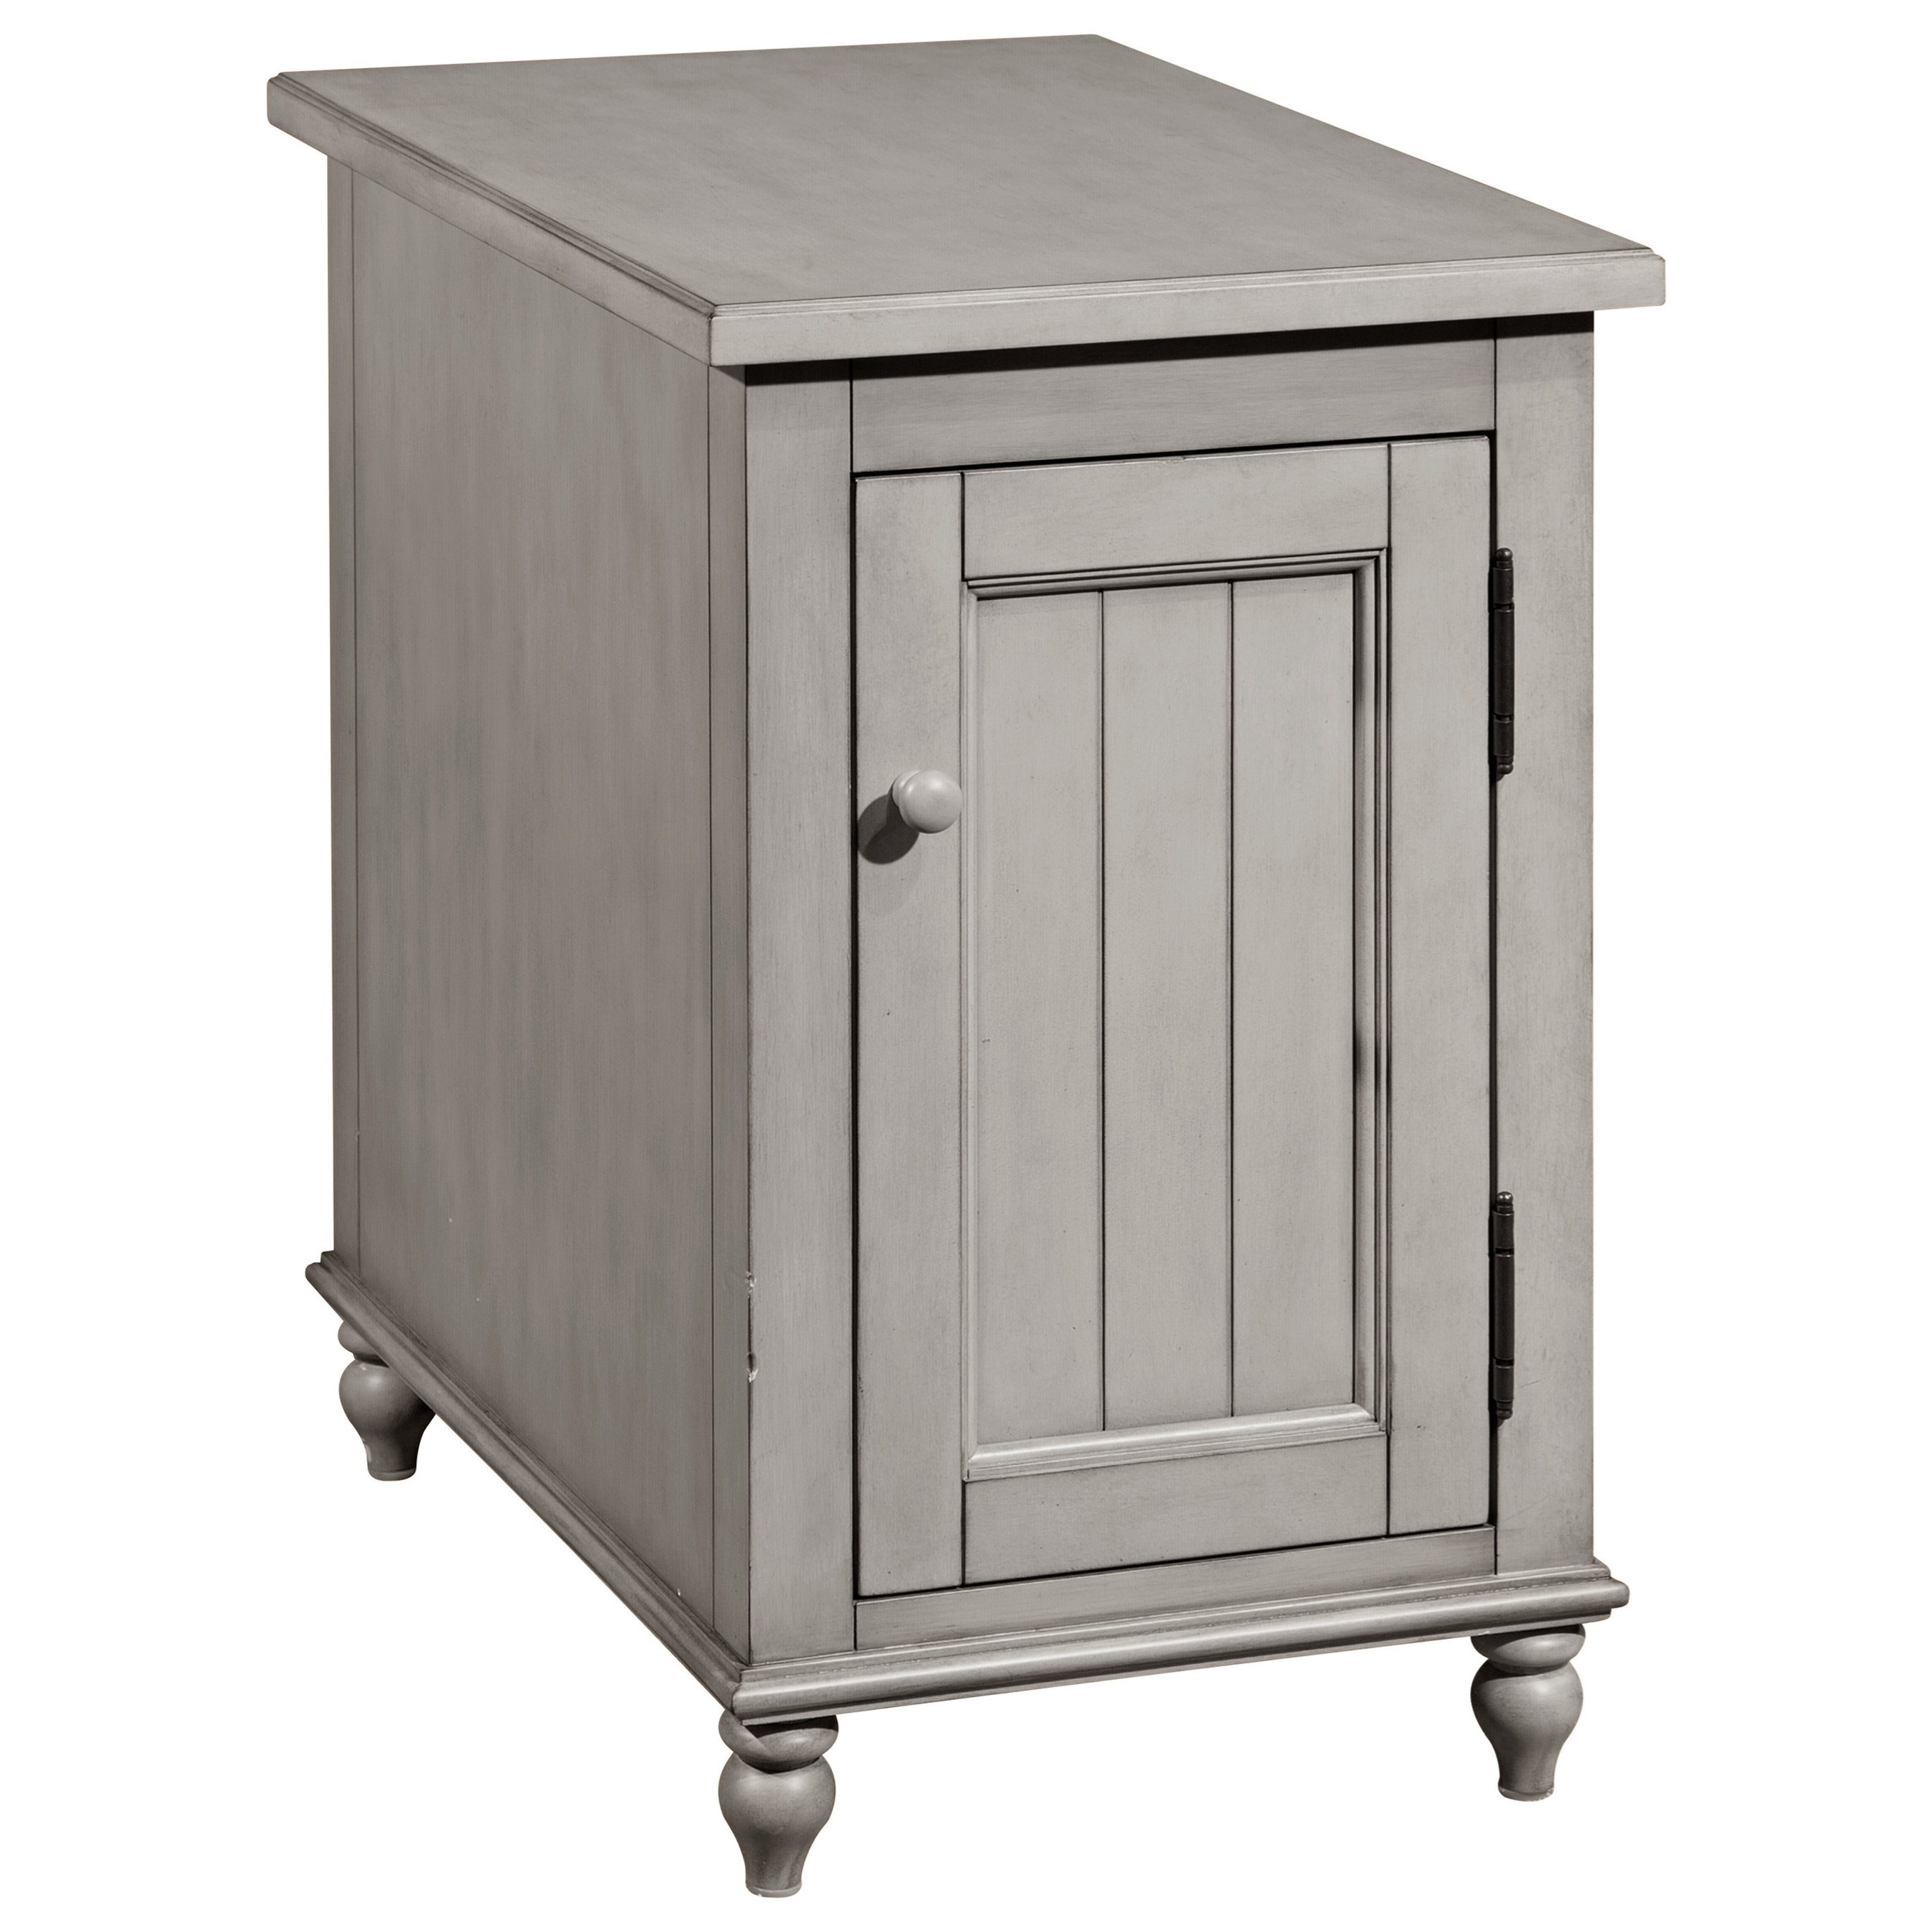 Broyhill furniture 8712 kearsley gray accent table value for Accent furnitureable